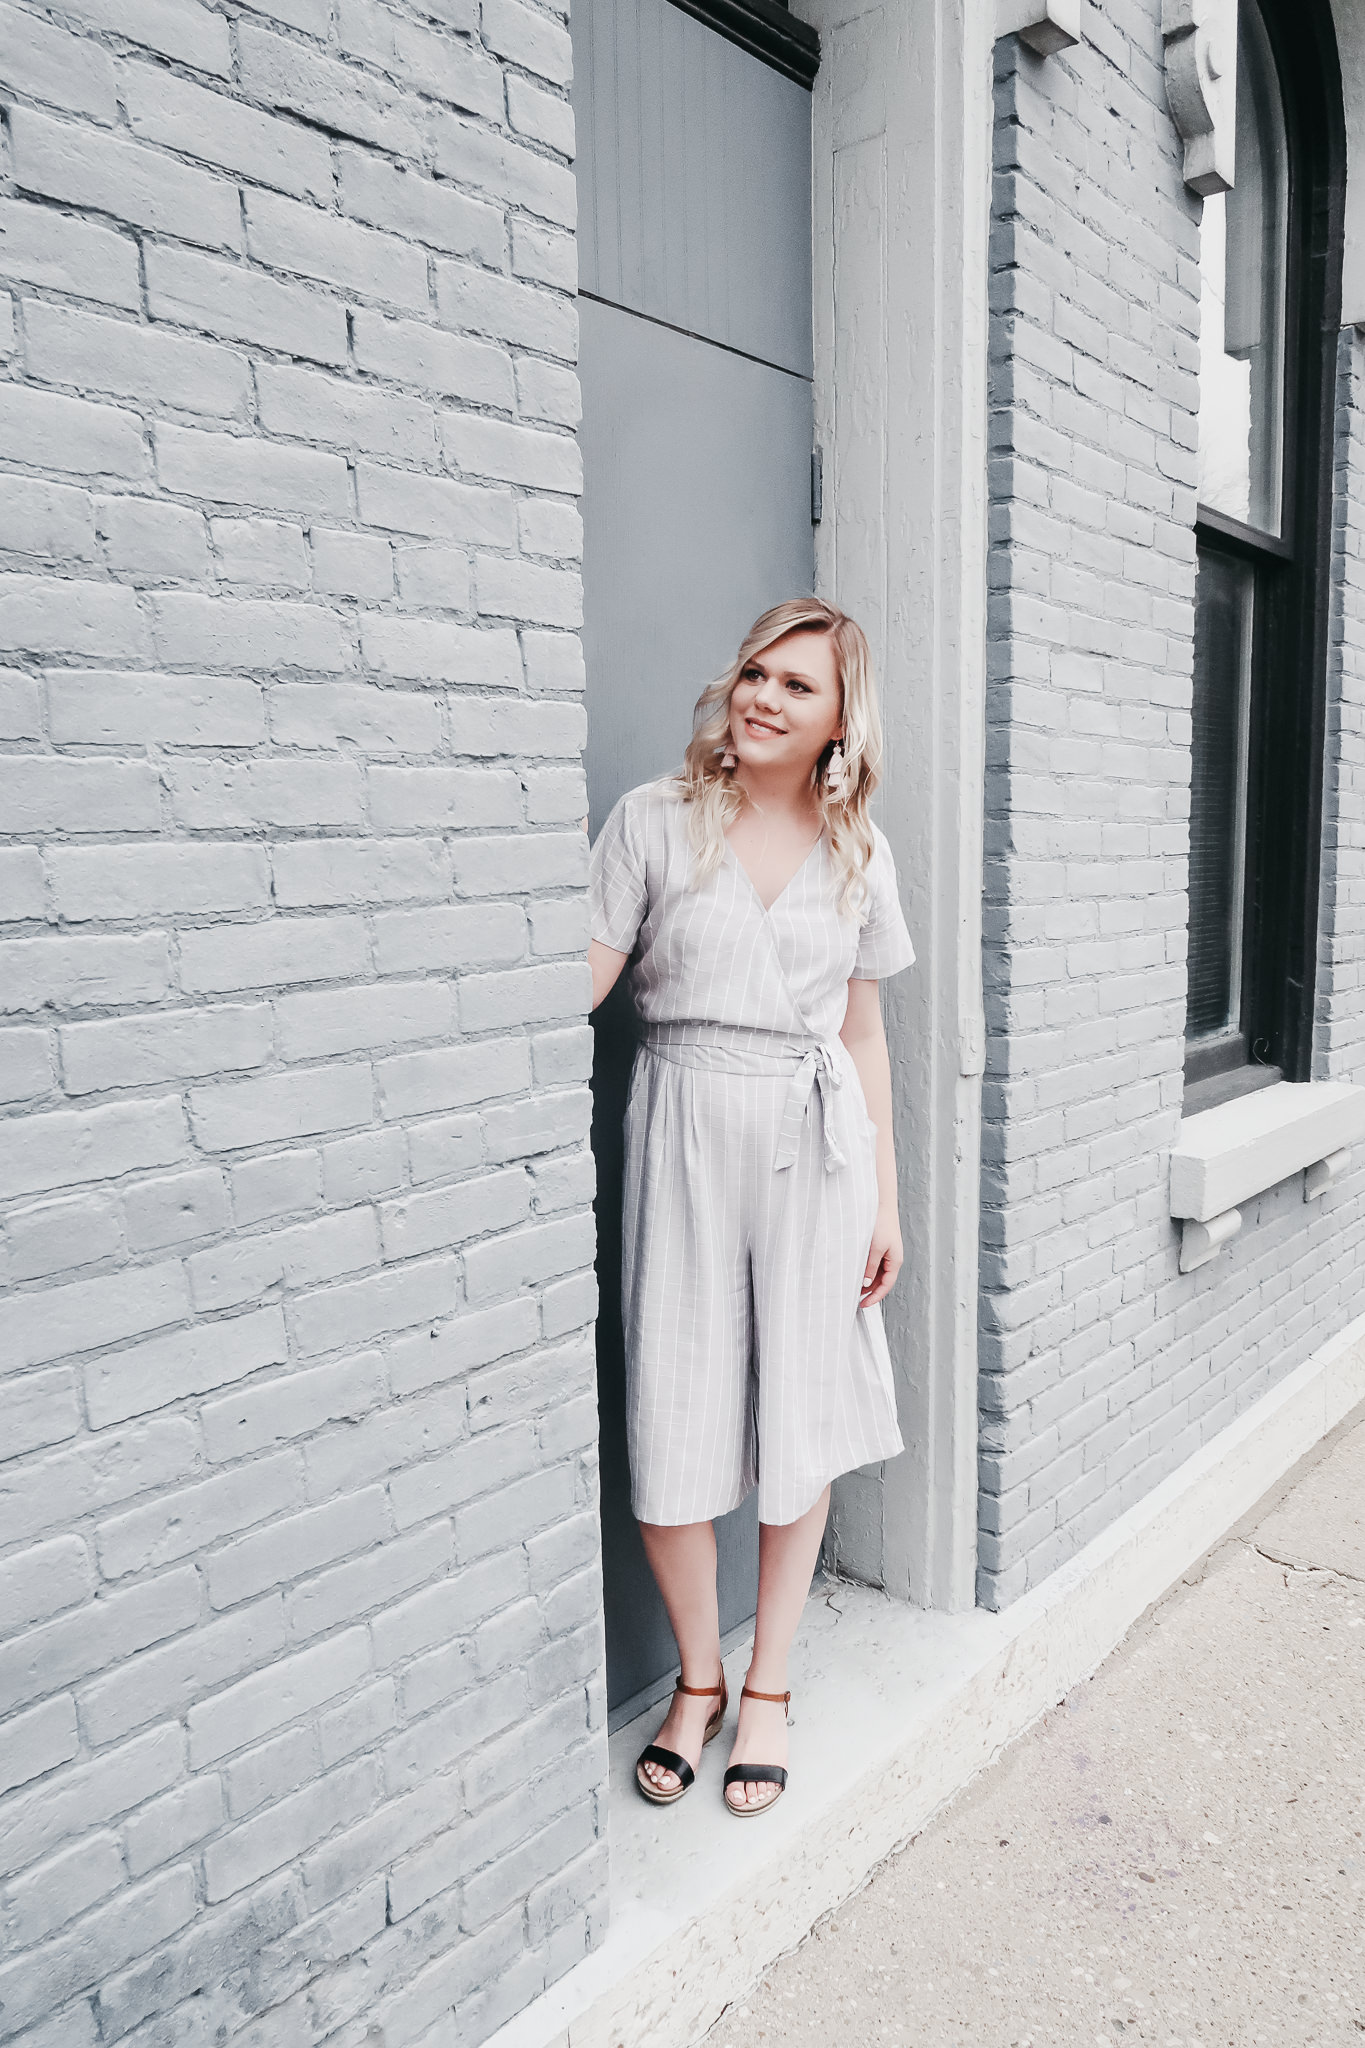 10 Tips for Developing Your Personal Style 4